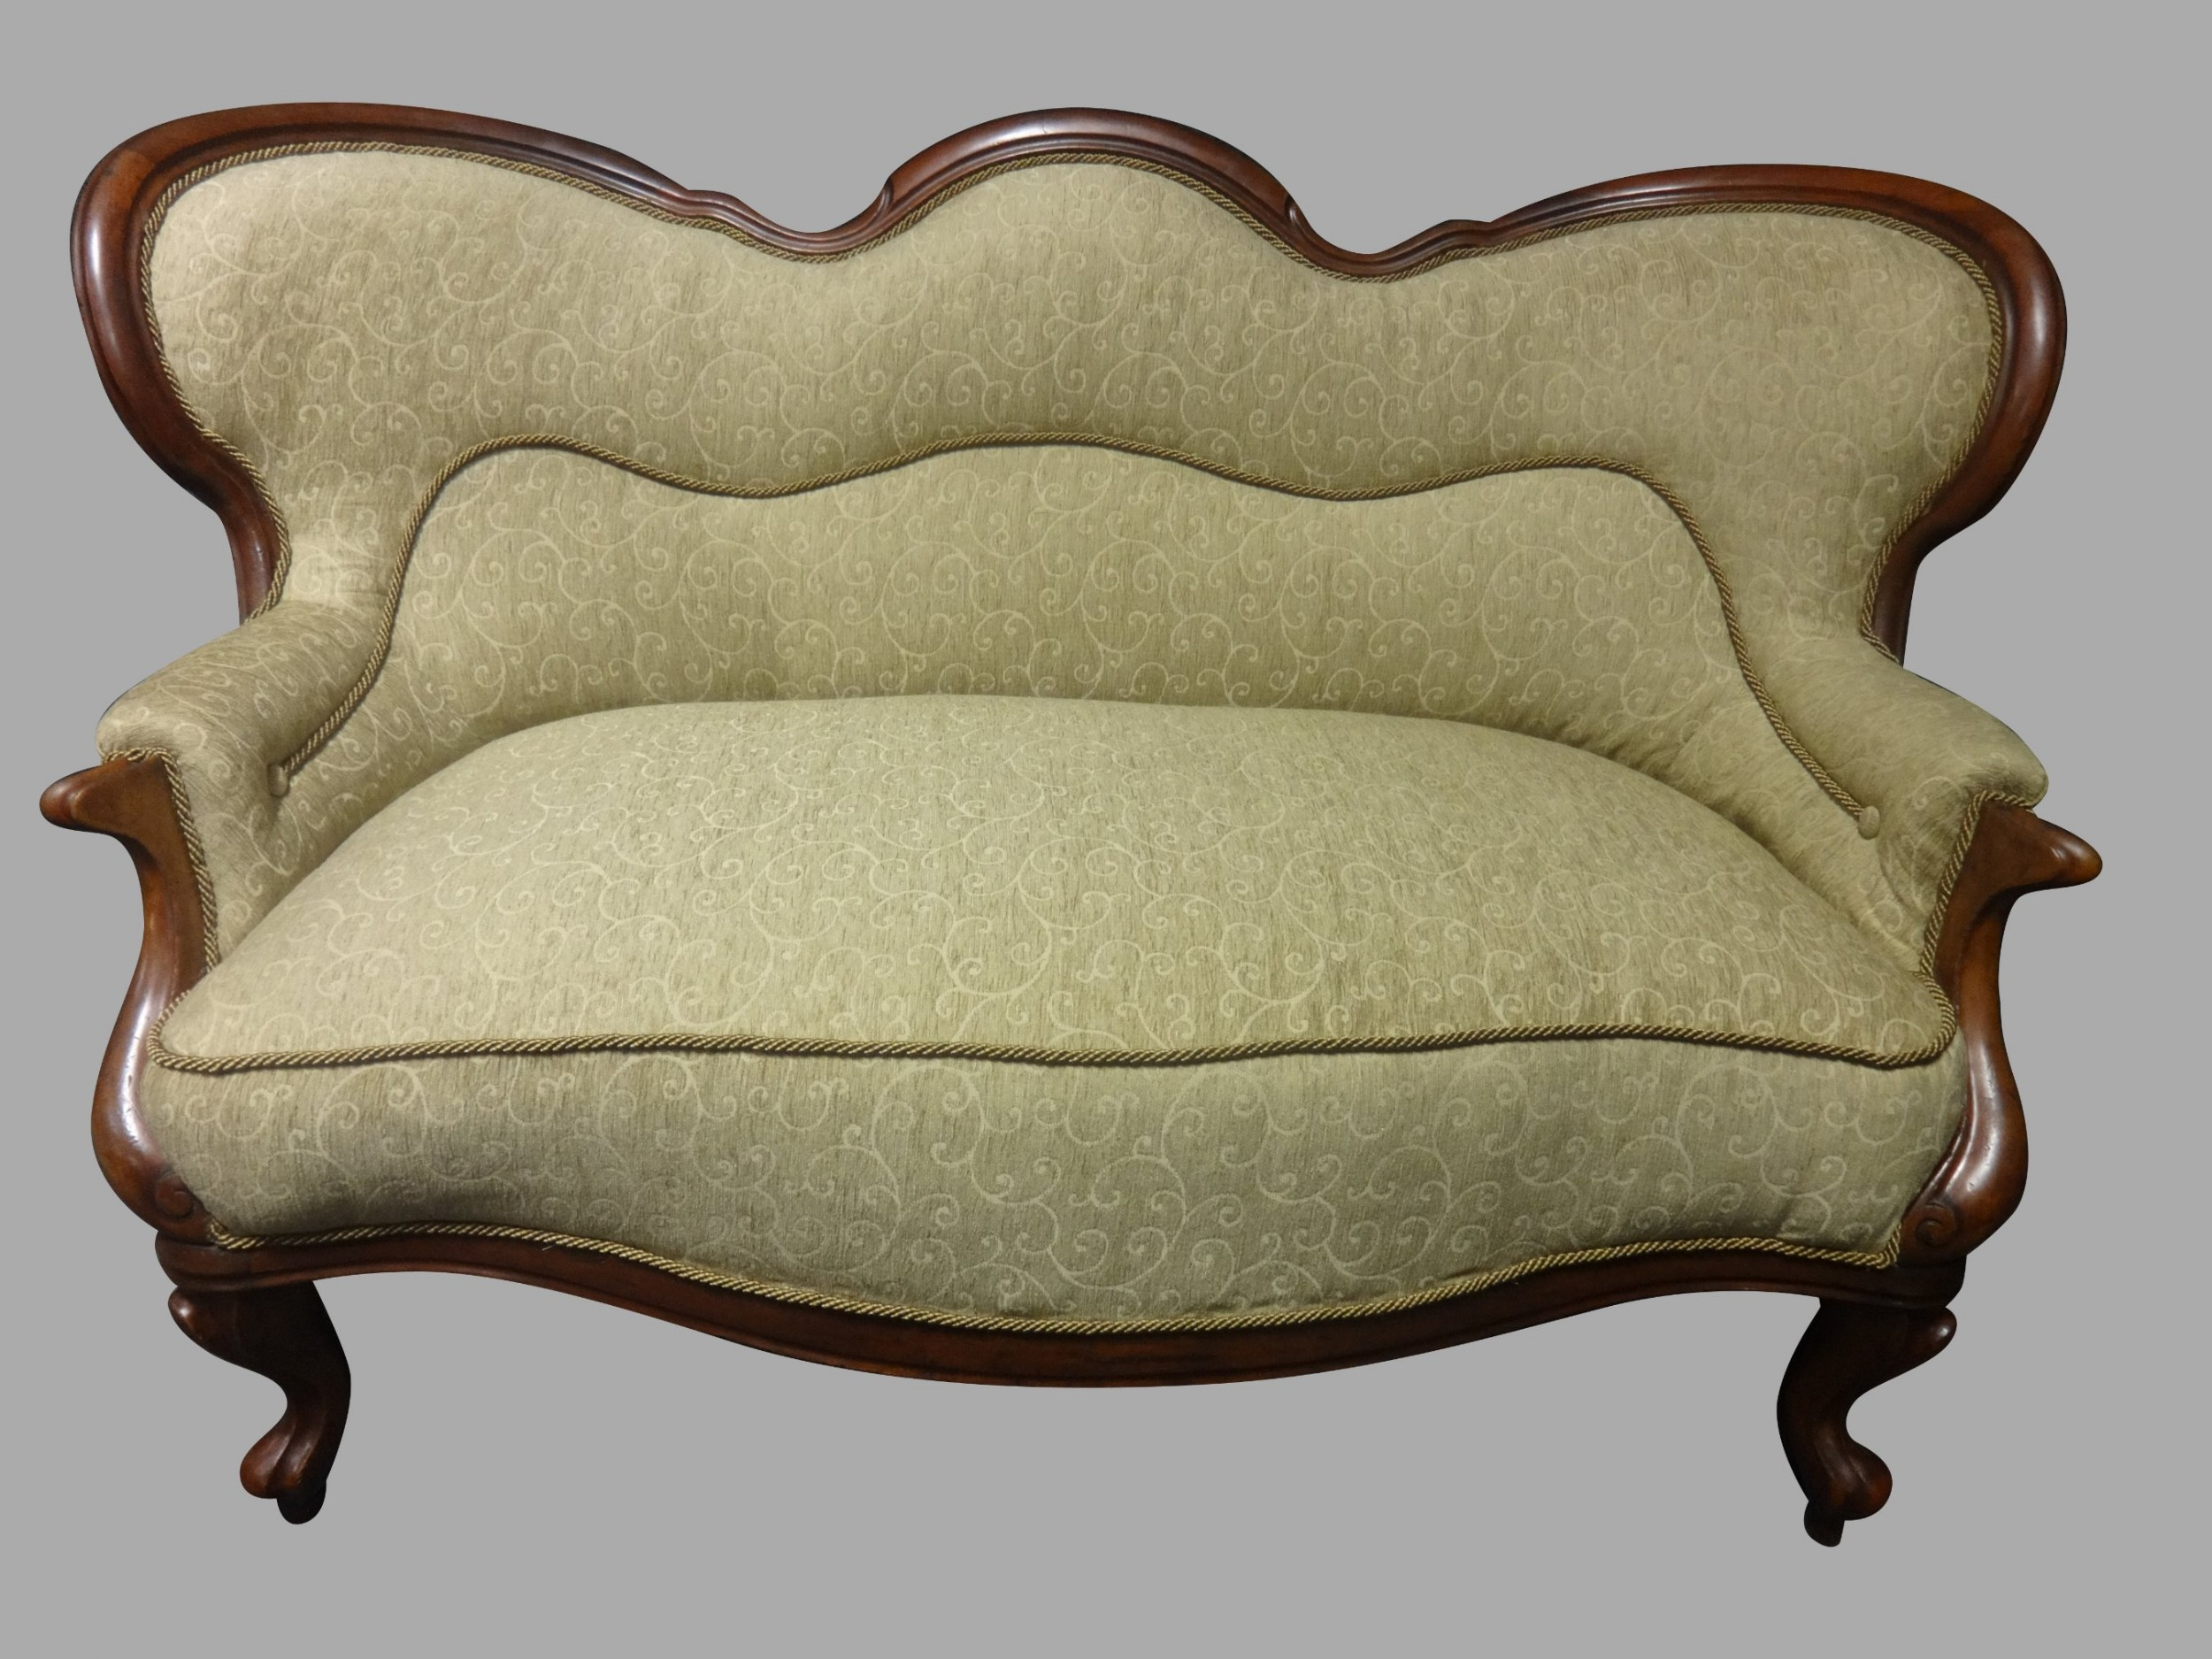 superb newly upholstered victorian mahogany sofa